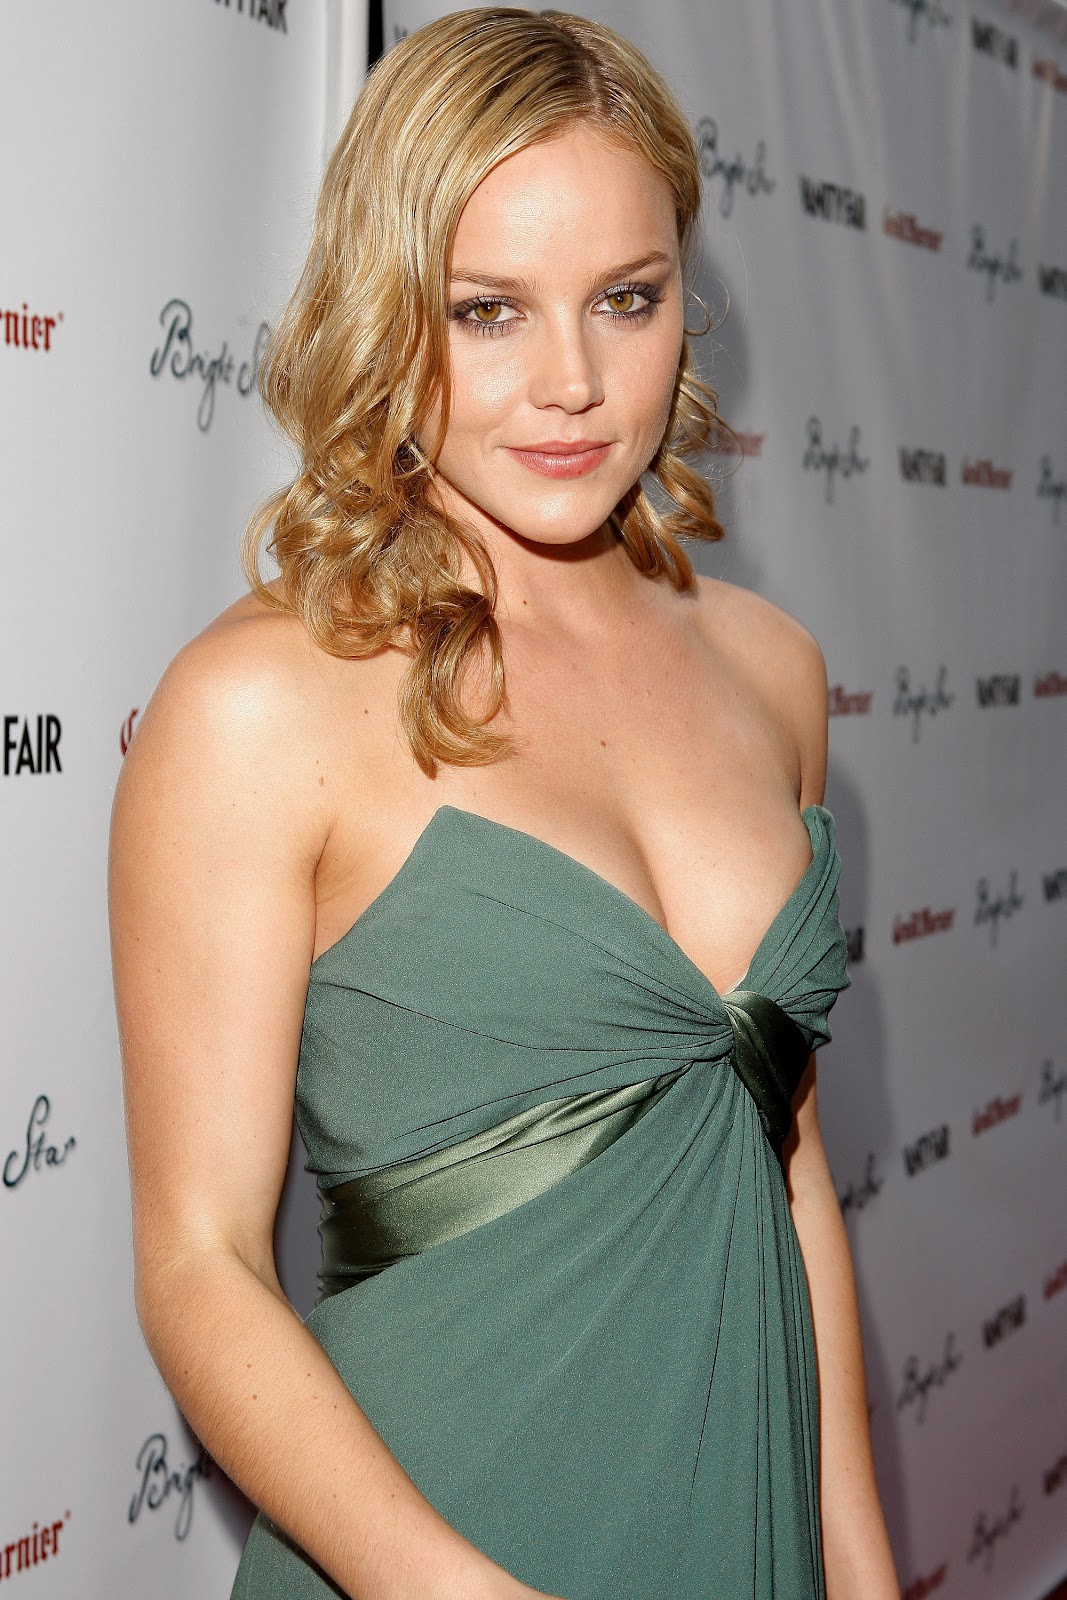 Abbie Cornish: biography and career | Film Actresses Abbie Cornish